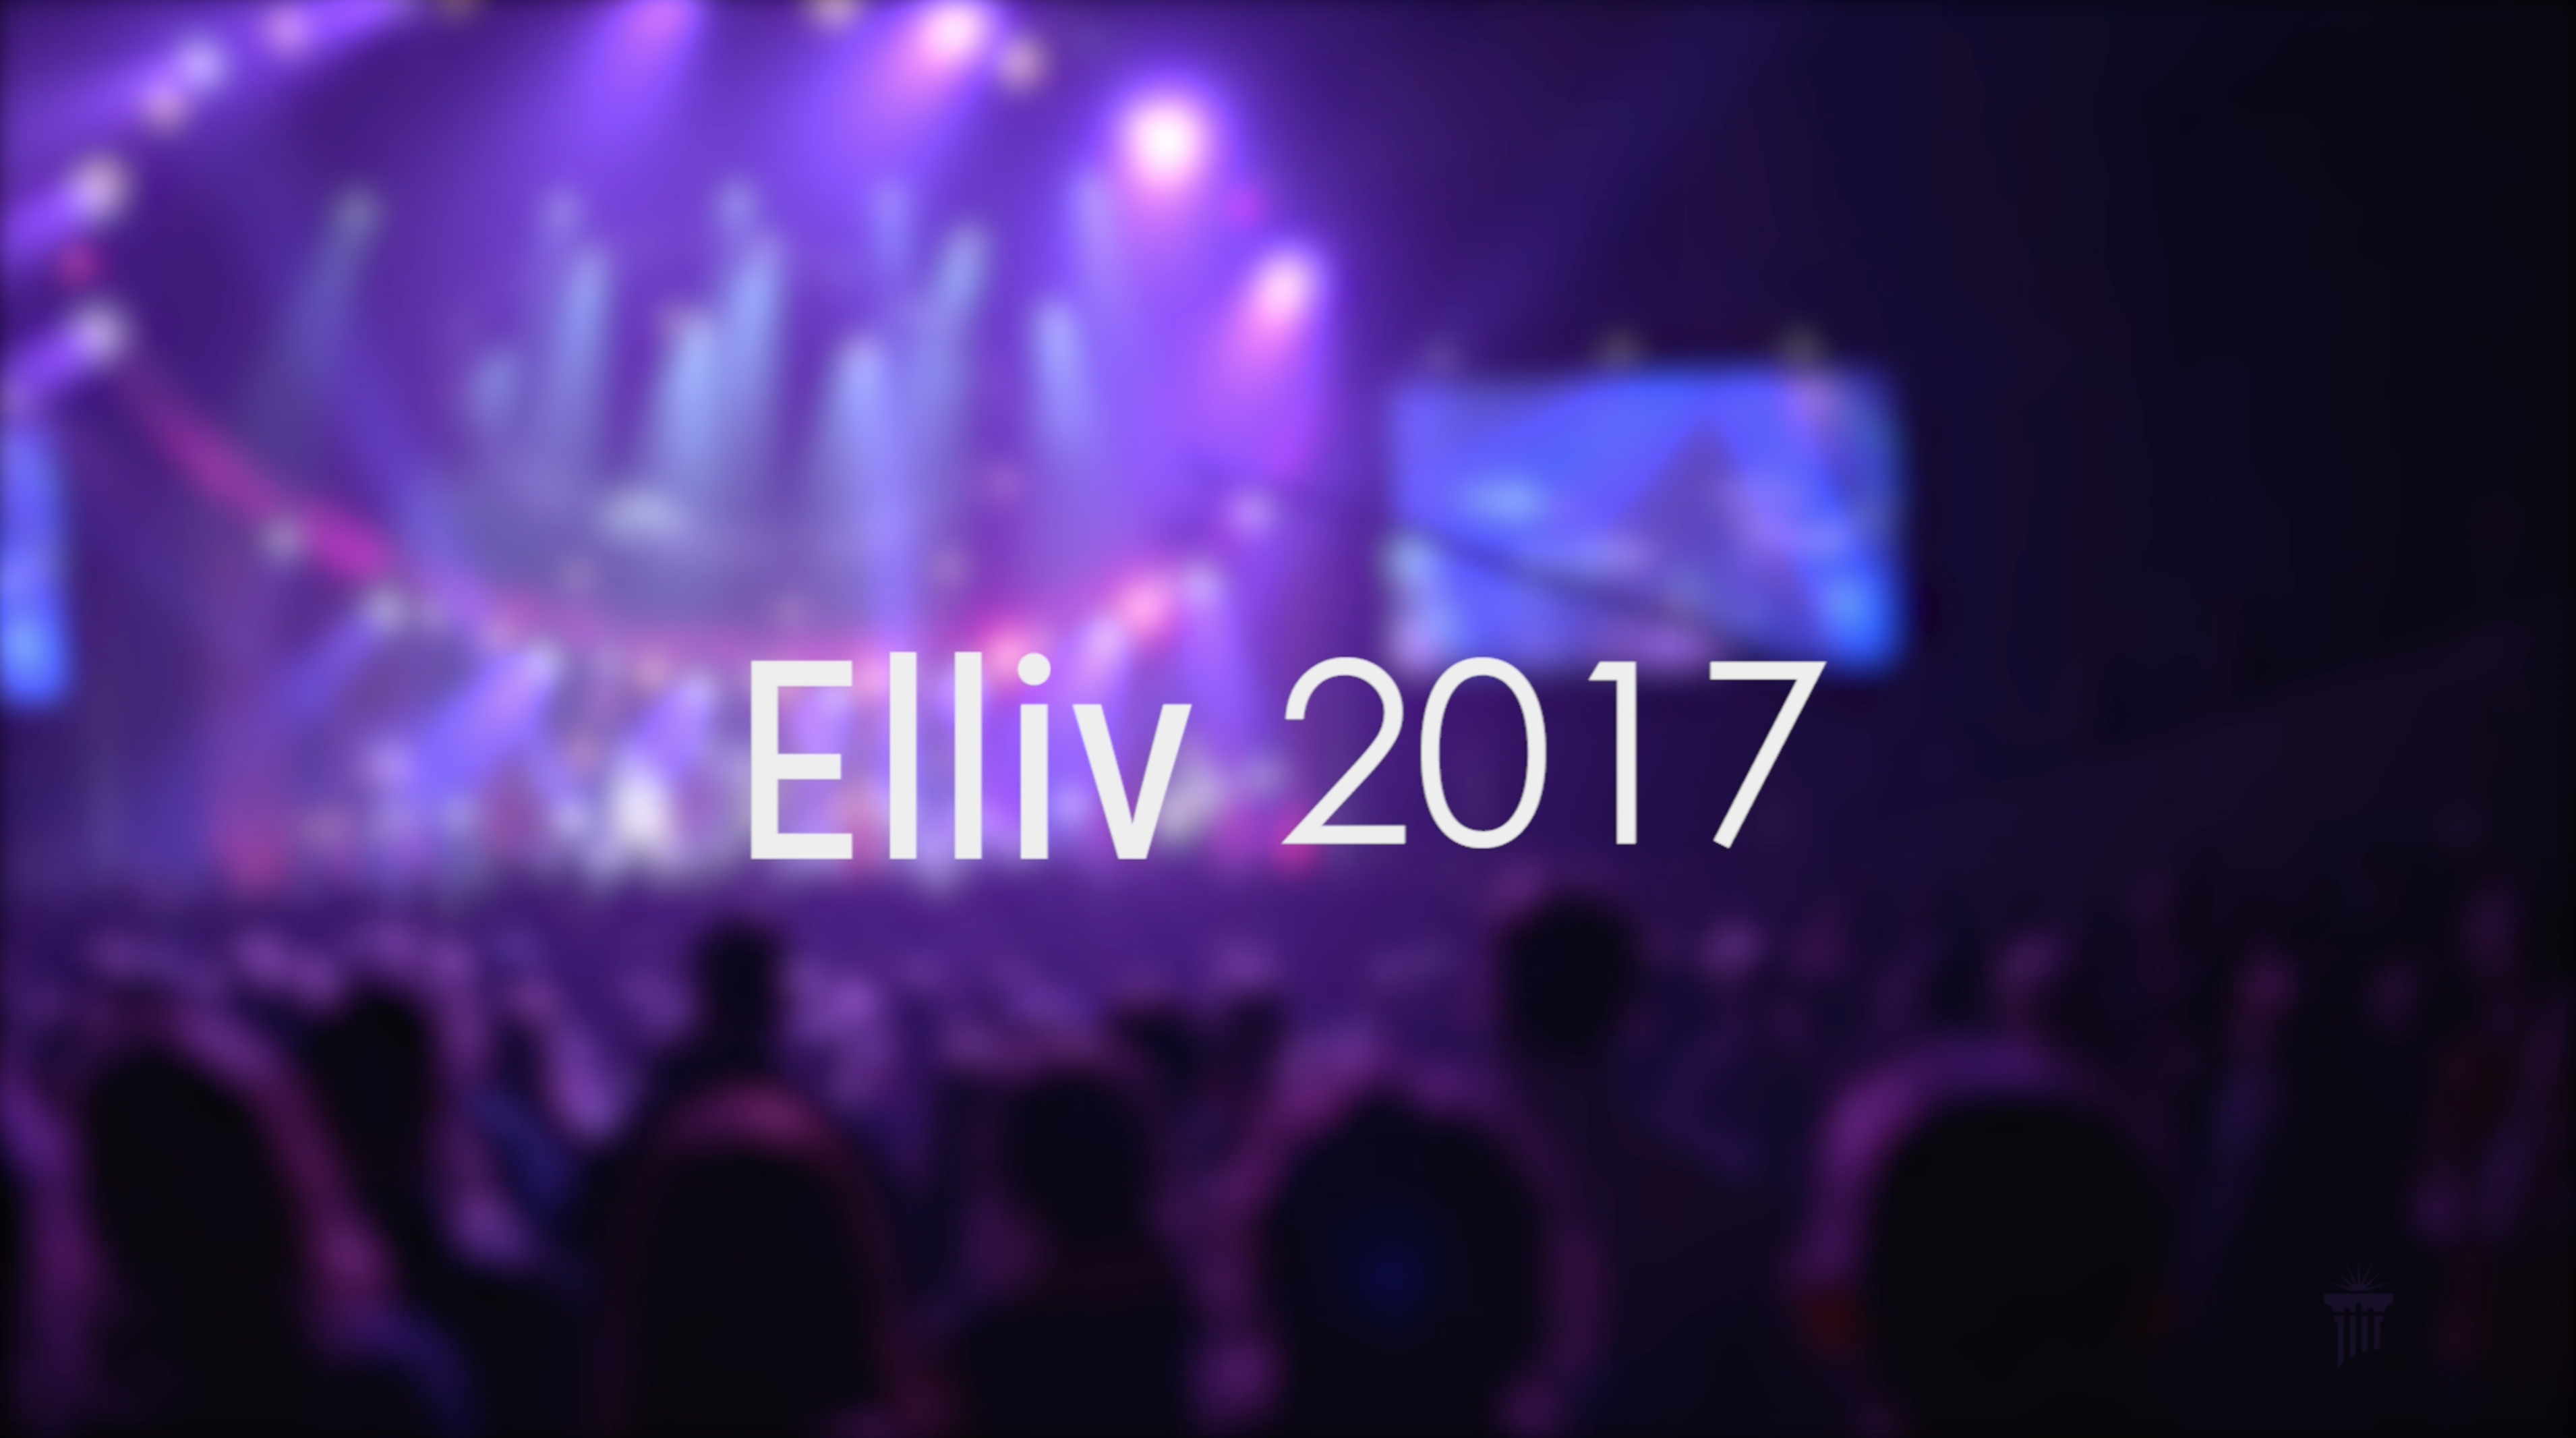 View thumbnail for Elliv 2017